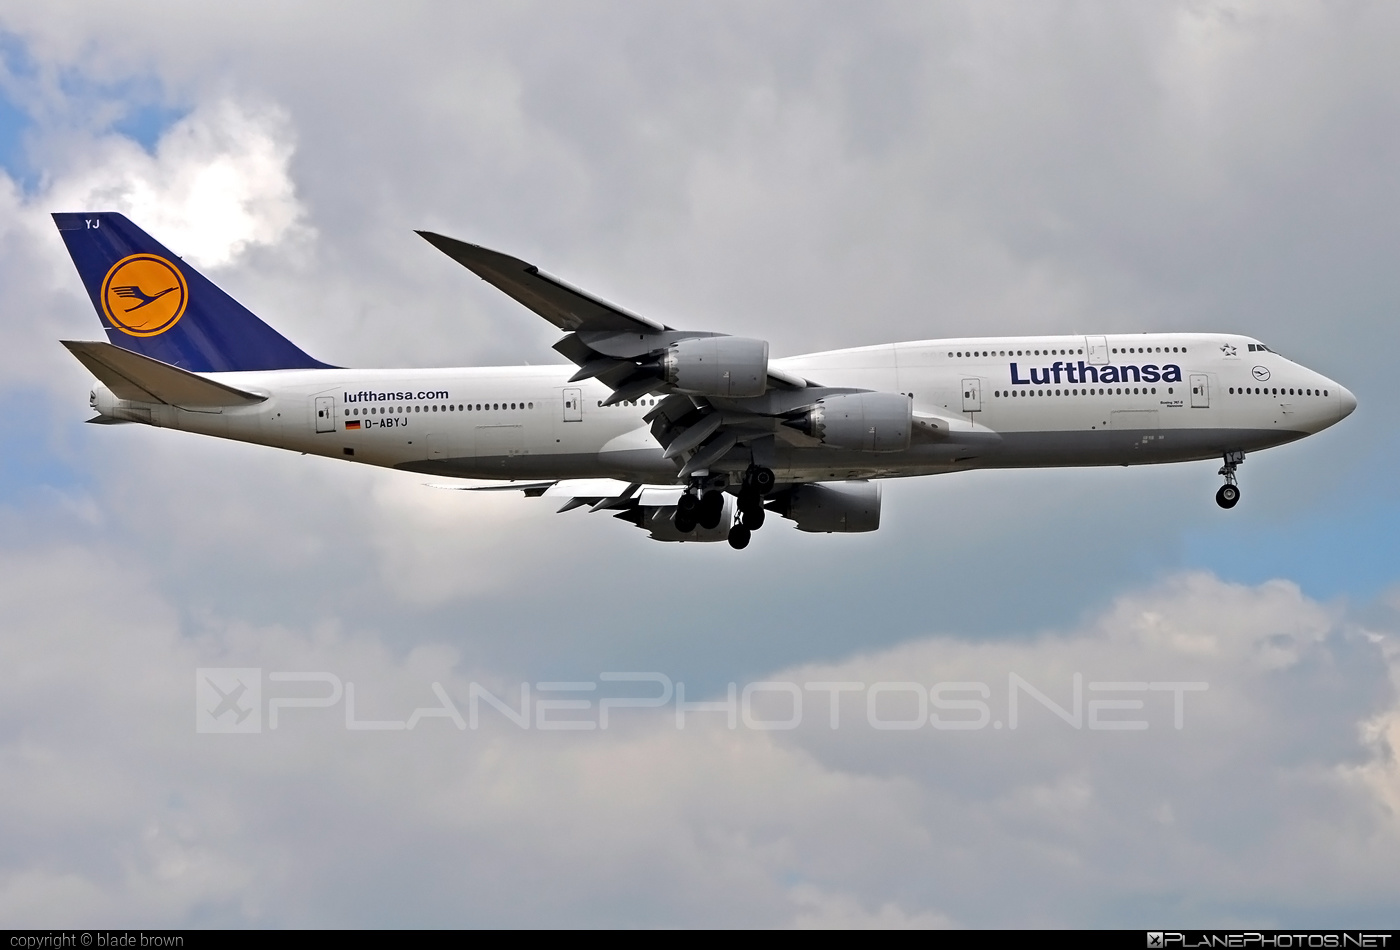 Boeing 747-8 - D-ABYJ operated by Lufthansa #b747 #boeing #boeing747 #jumbo #lufthansa